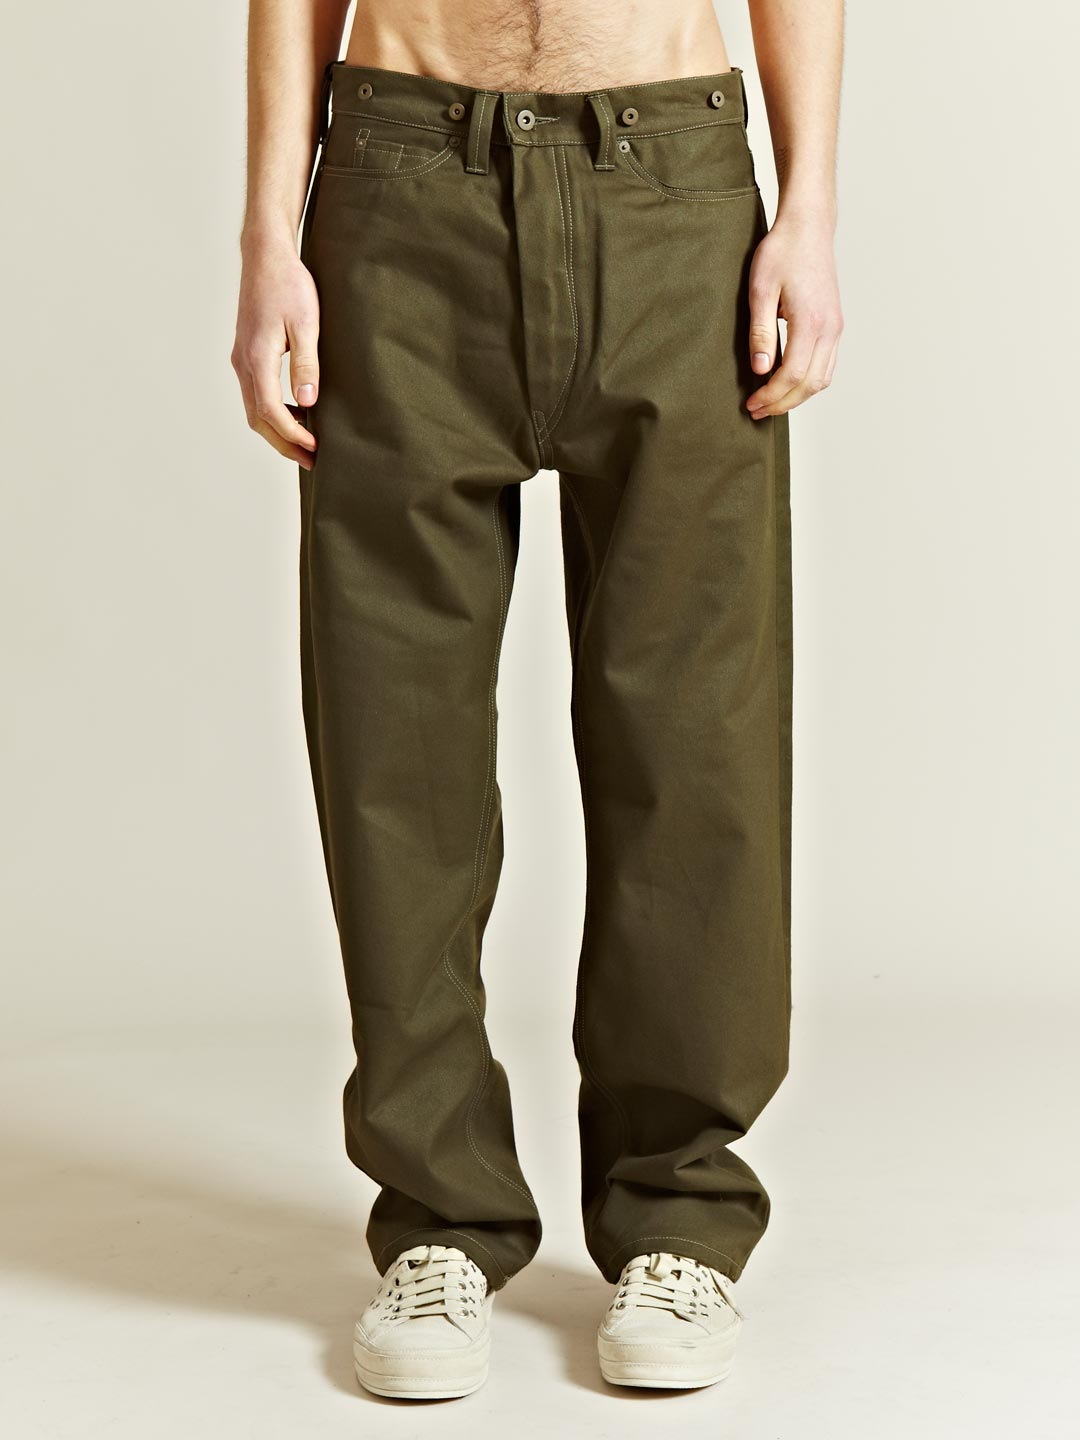 Khaki Jeans For Men